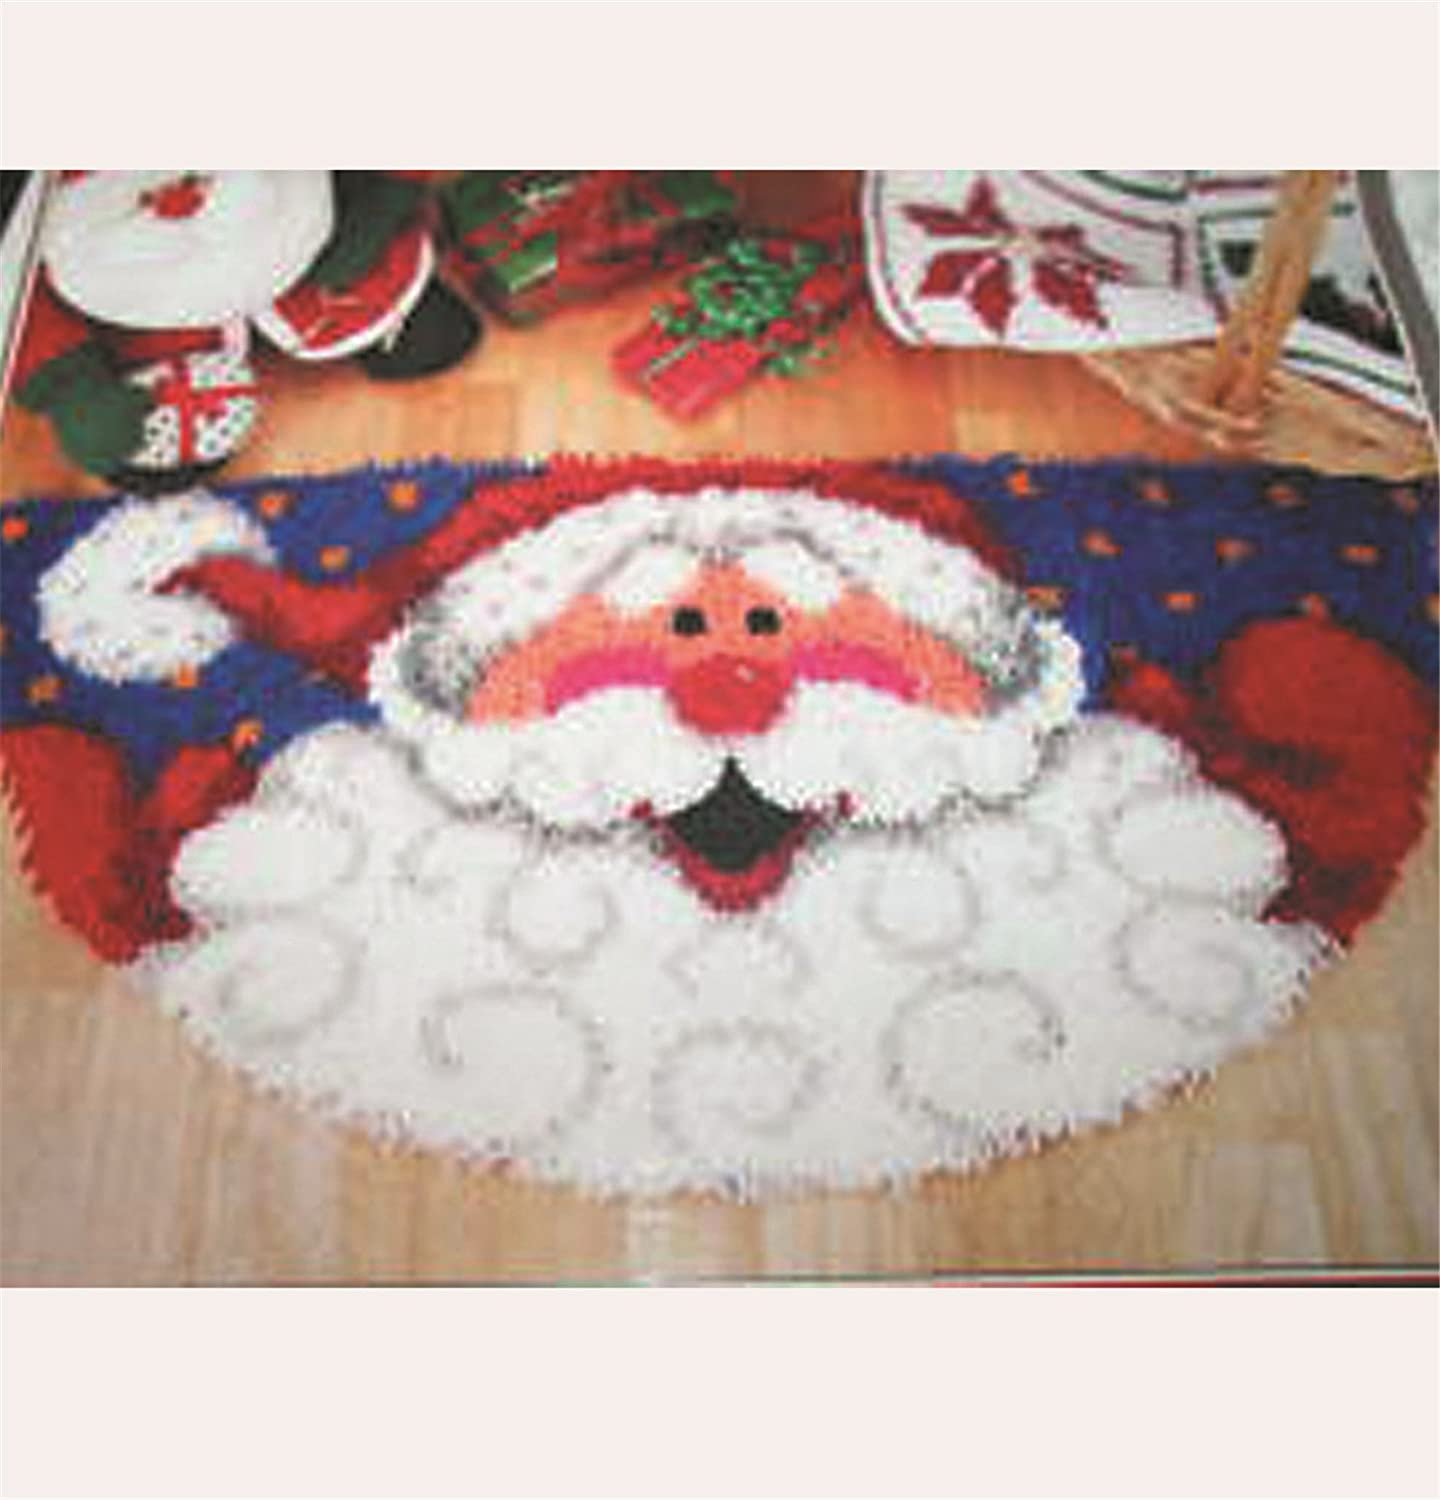 14 Model Christmas New Latch Hook Kit Rug Christmas127 20 by 14 Inch 1 pack